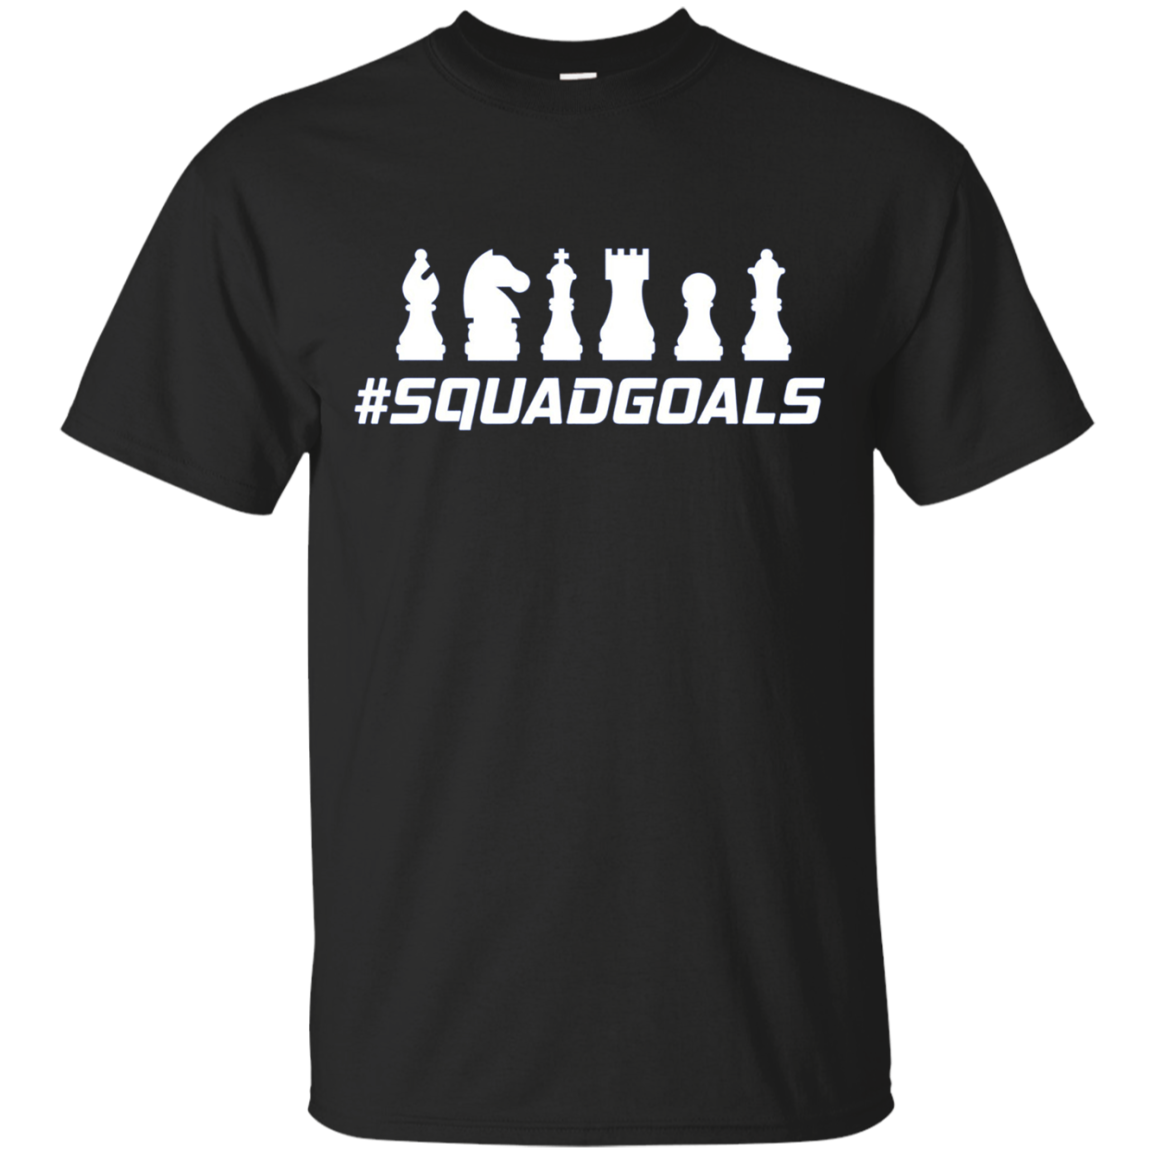 Squad Goals Chess Player T-Shirt - Player King Knight Queen